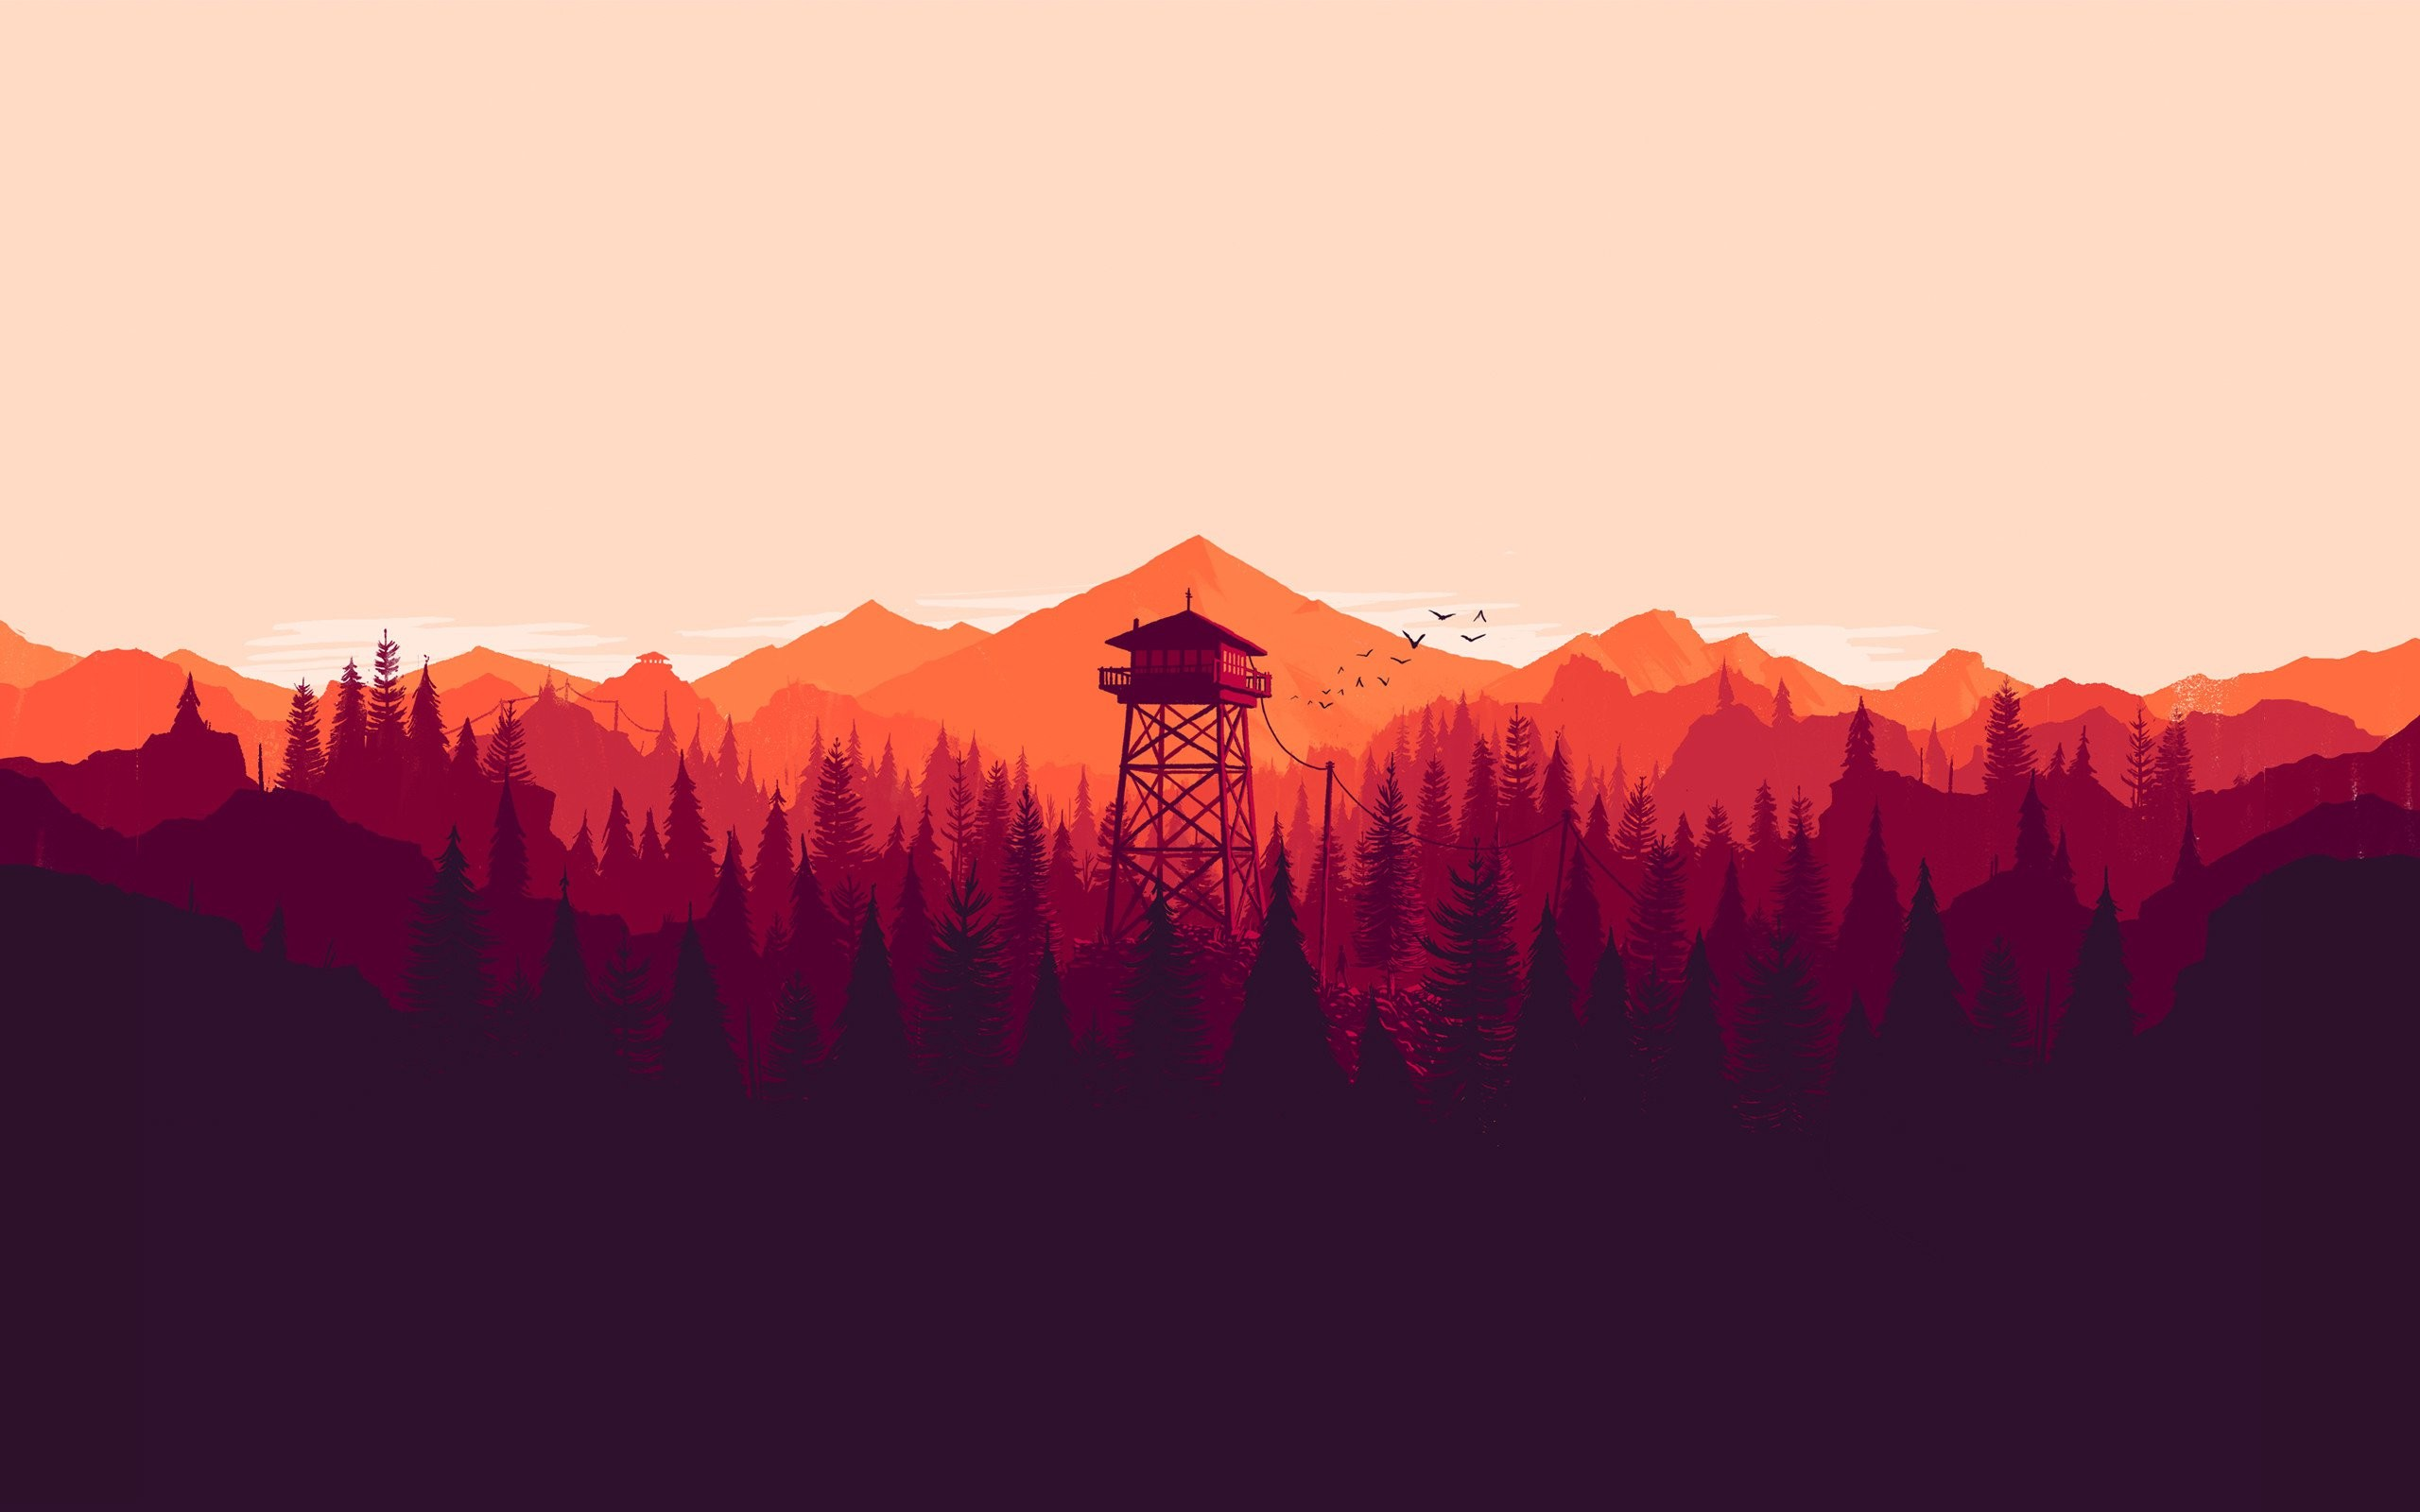 Minimalist wallpapers to get your week started right AndroidGuys